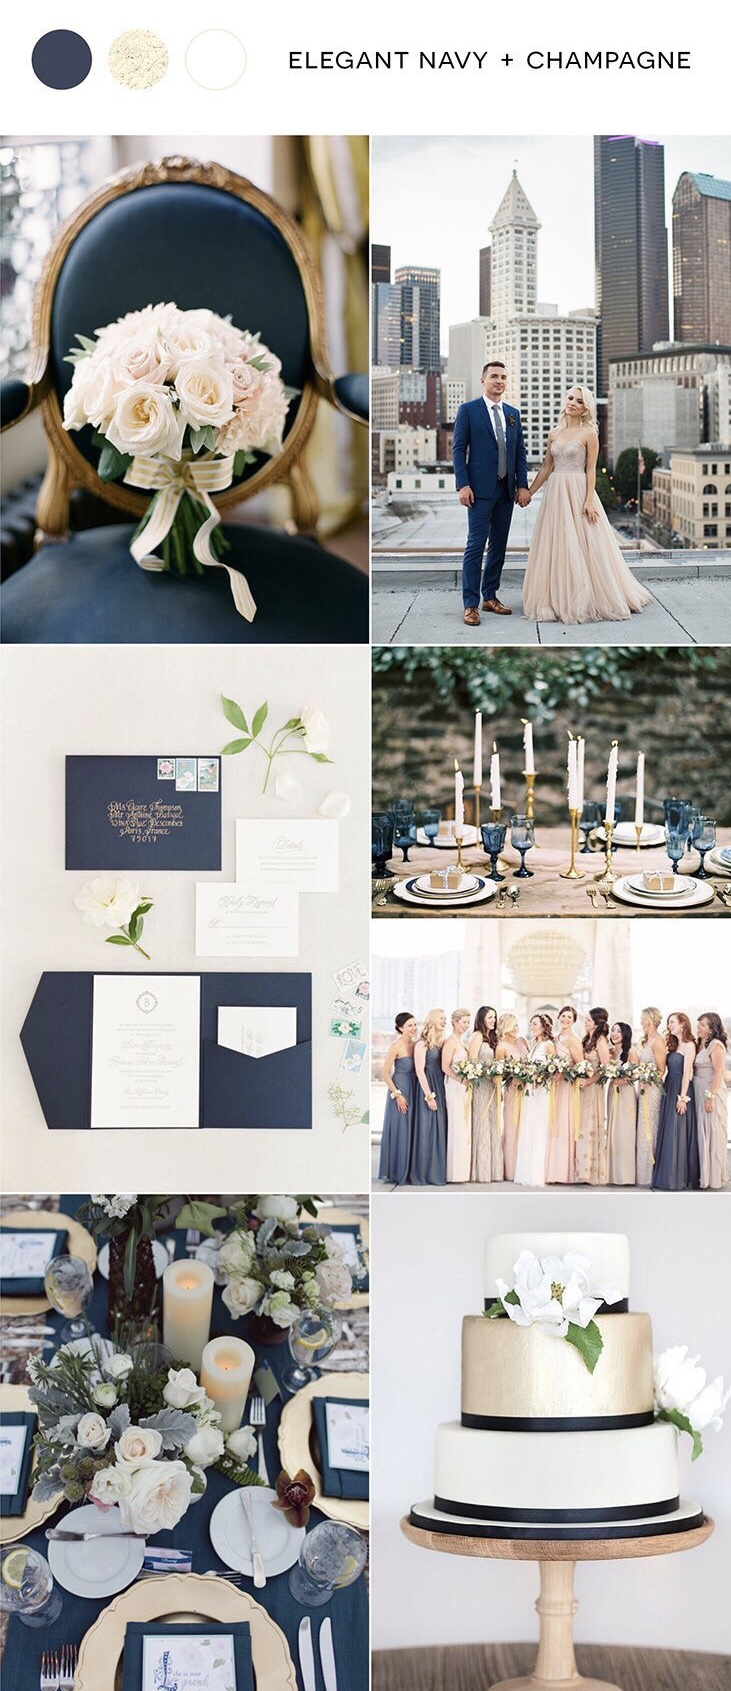 Elegant Navy and Champagne Neira Event Group Wisconsin Wedding Planner  Wisconsin Winter Wedding Wisconsin Summer Wedding Wisconsin Spring Wedding Wisconsin Wedding Colors